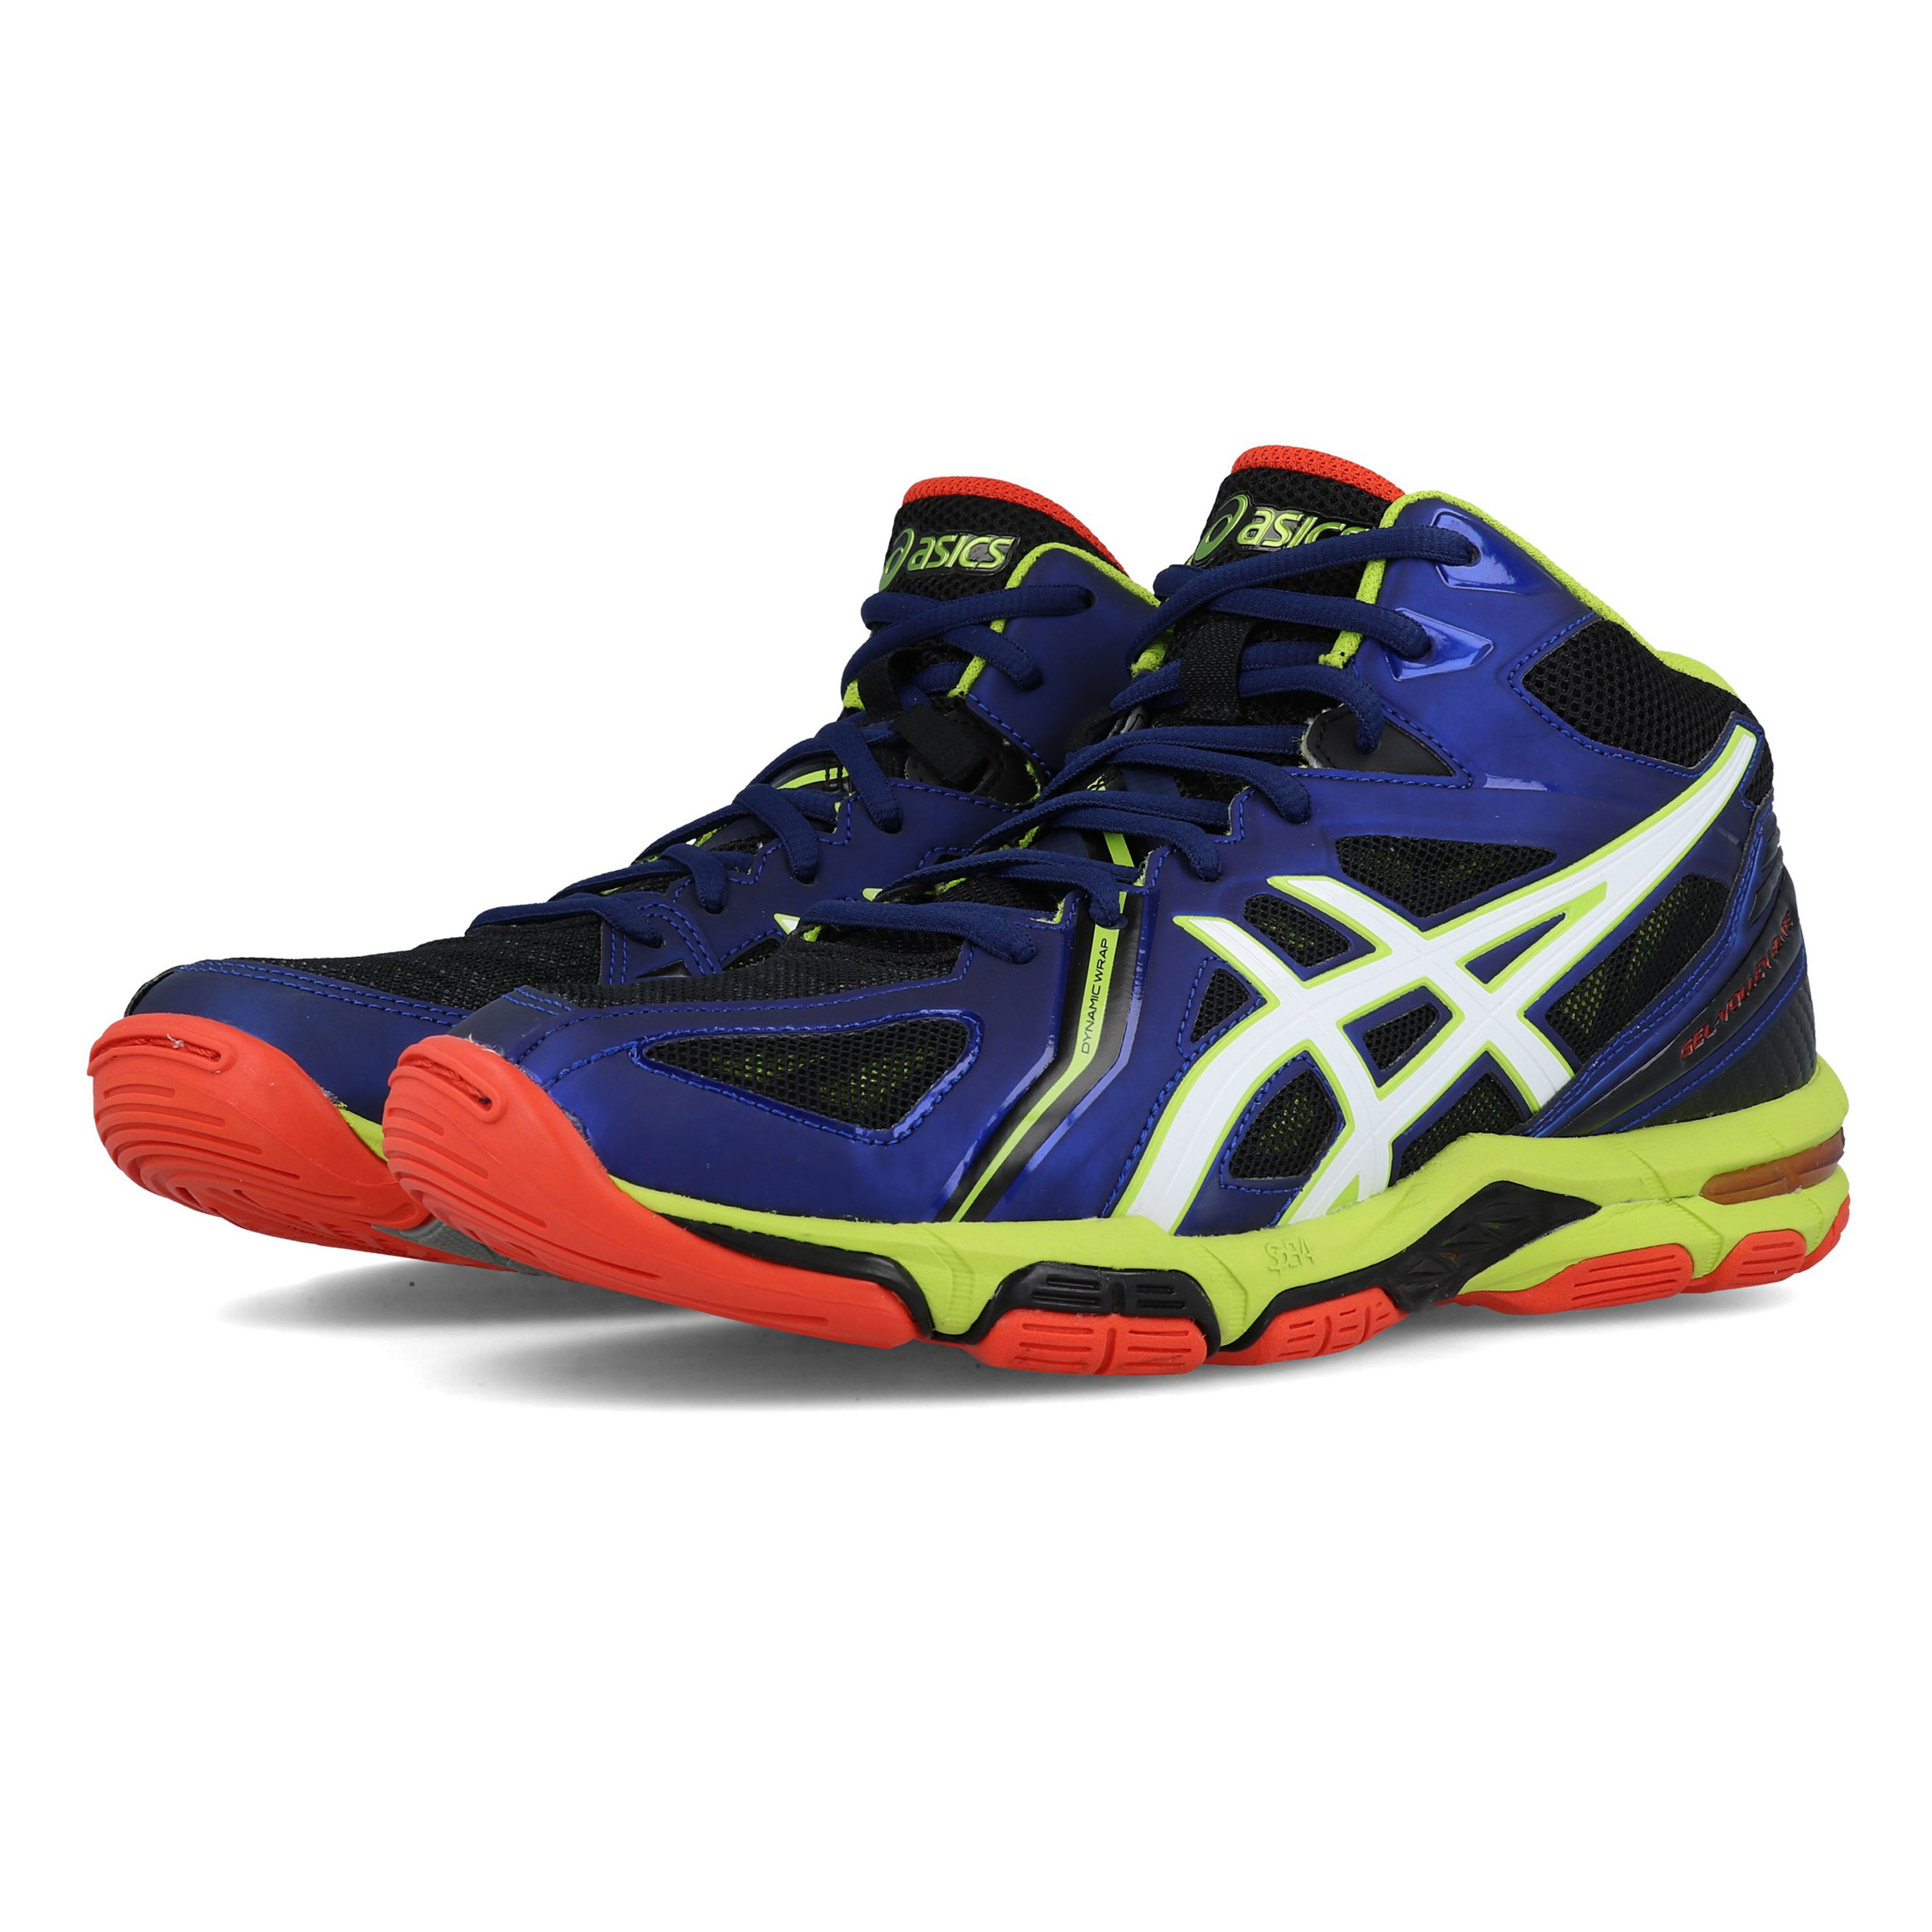 El hotel pistola Investigación  Asics Mens Gel Volley Elite 3 MT Court Shoes Blue Sports Handball Netball |  eBay